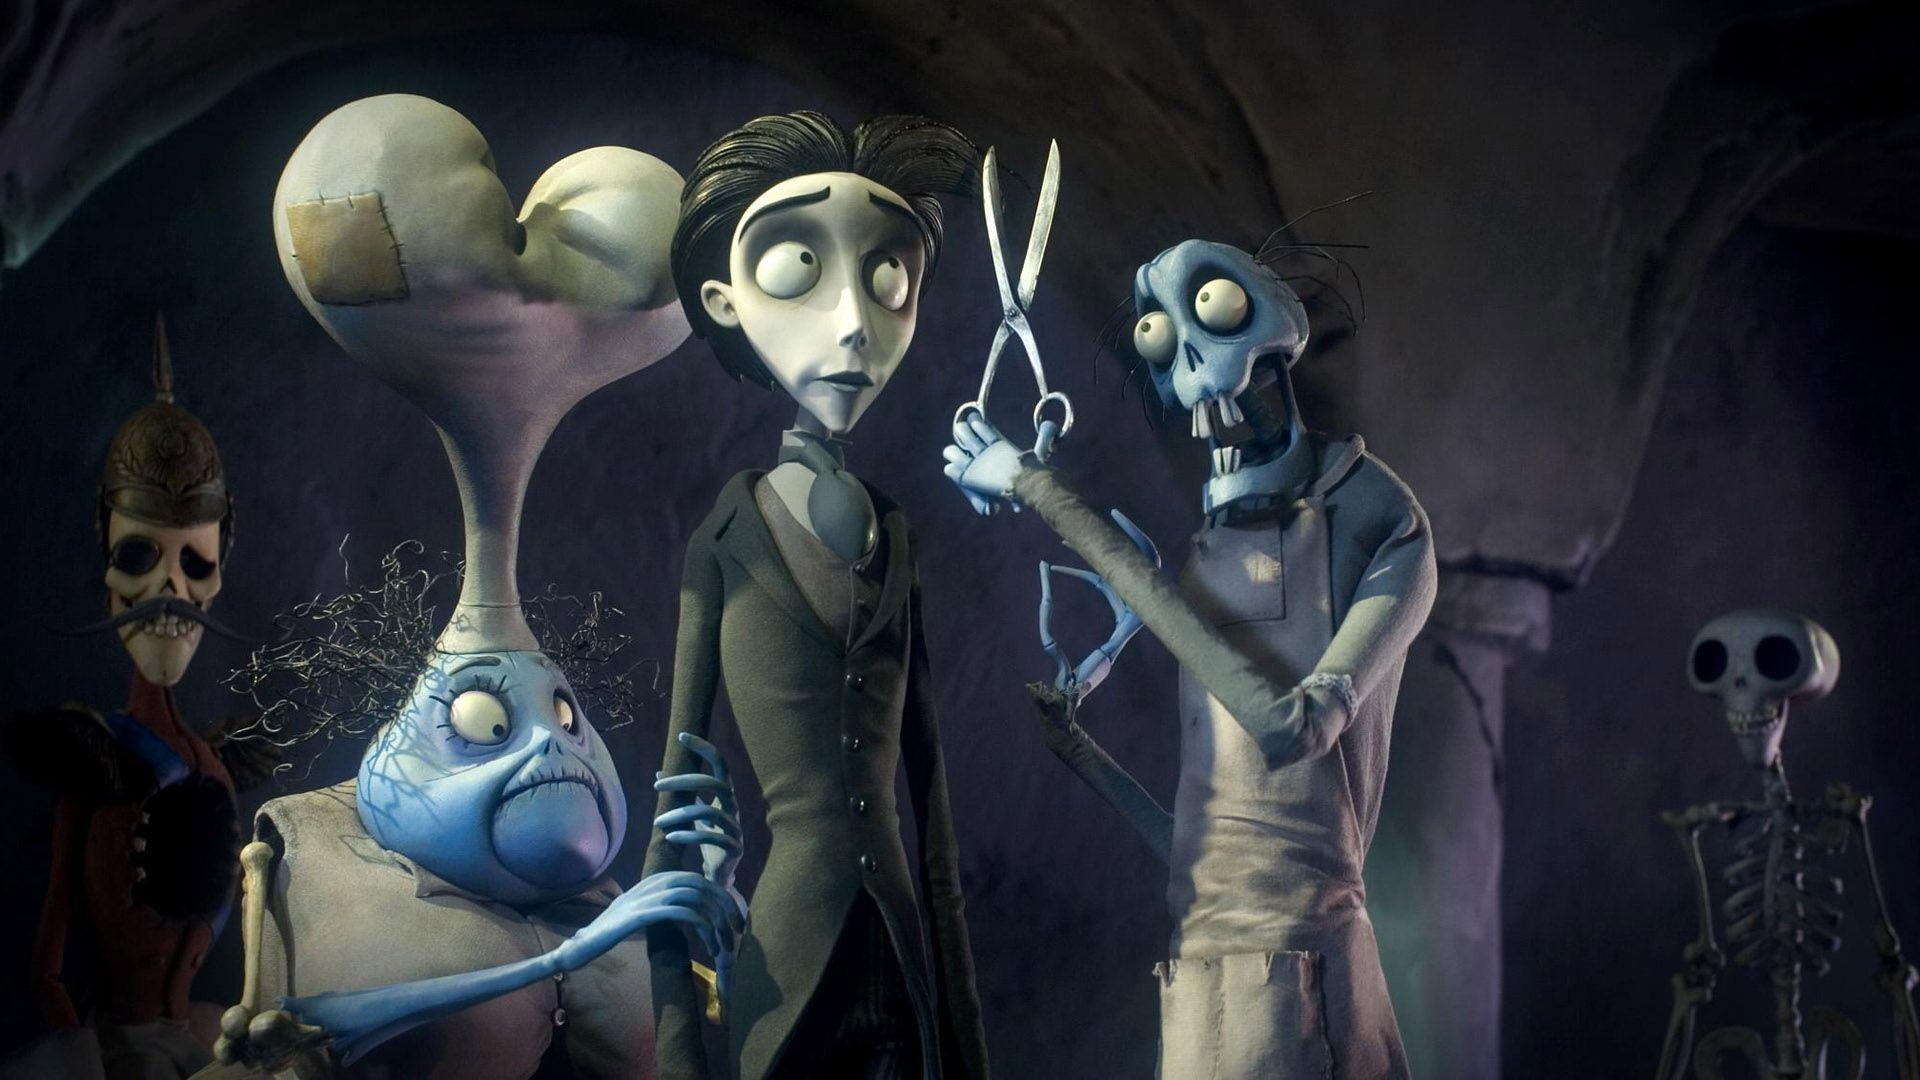 You will download Corpse Bride Wallpapers 1920x1080